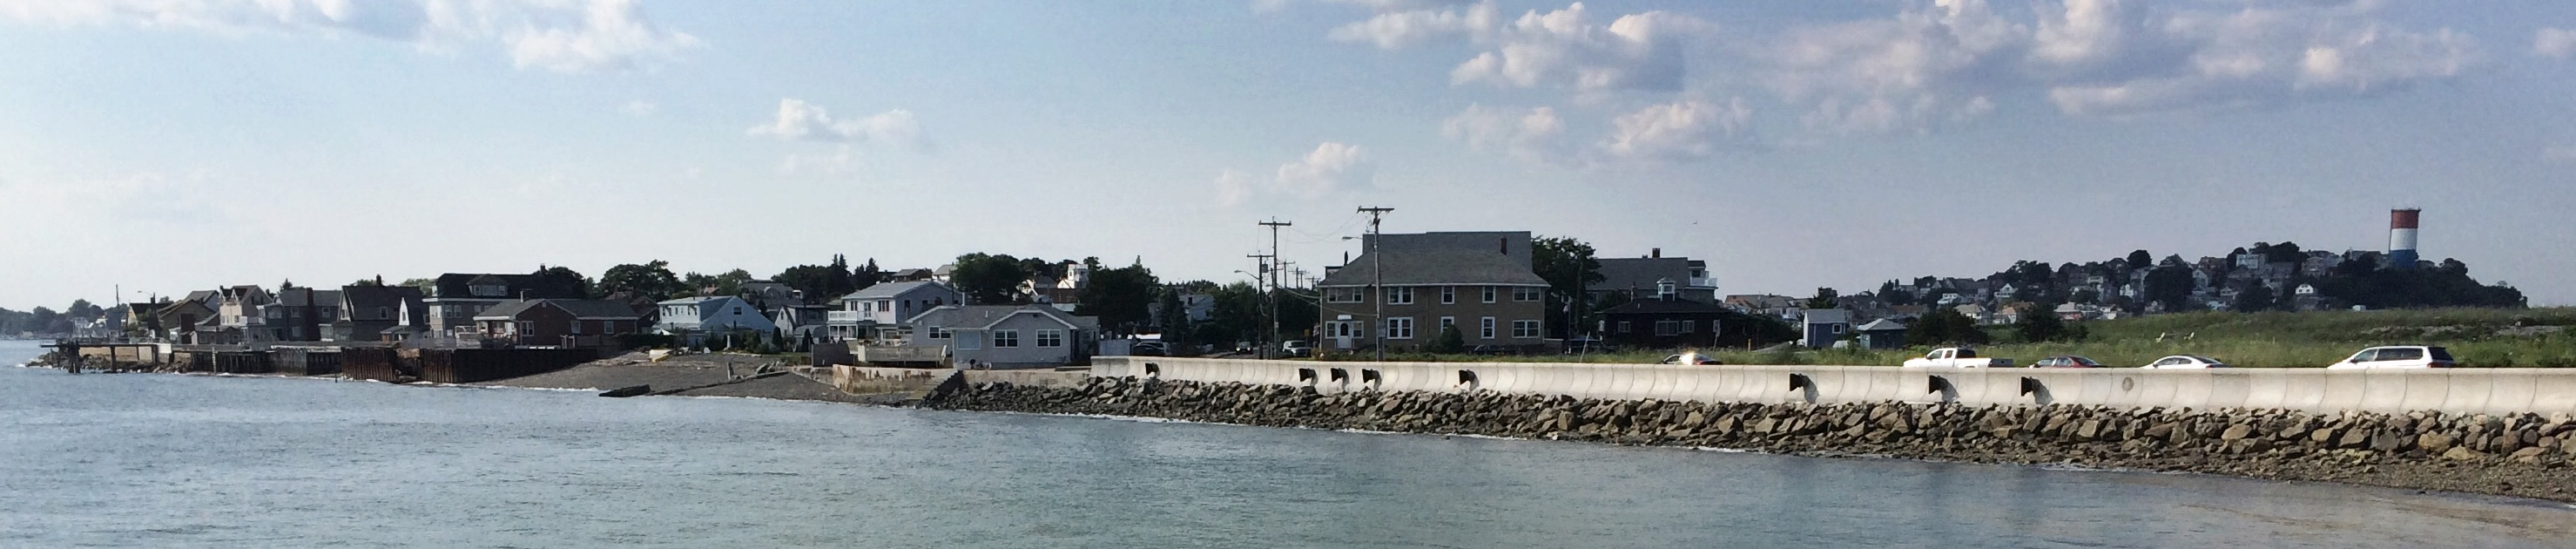 Point Shirley and Water Tower Hill from Deer Island